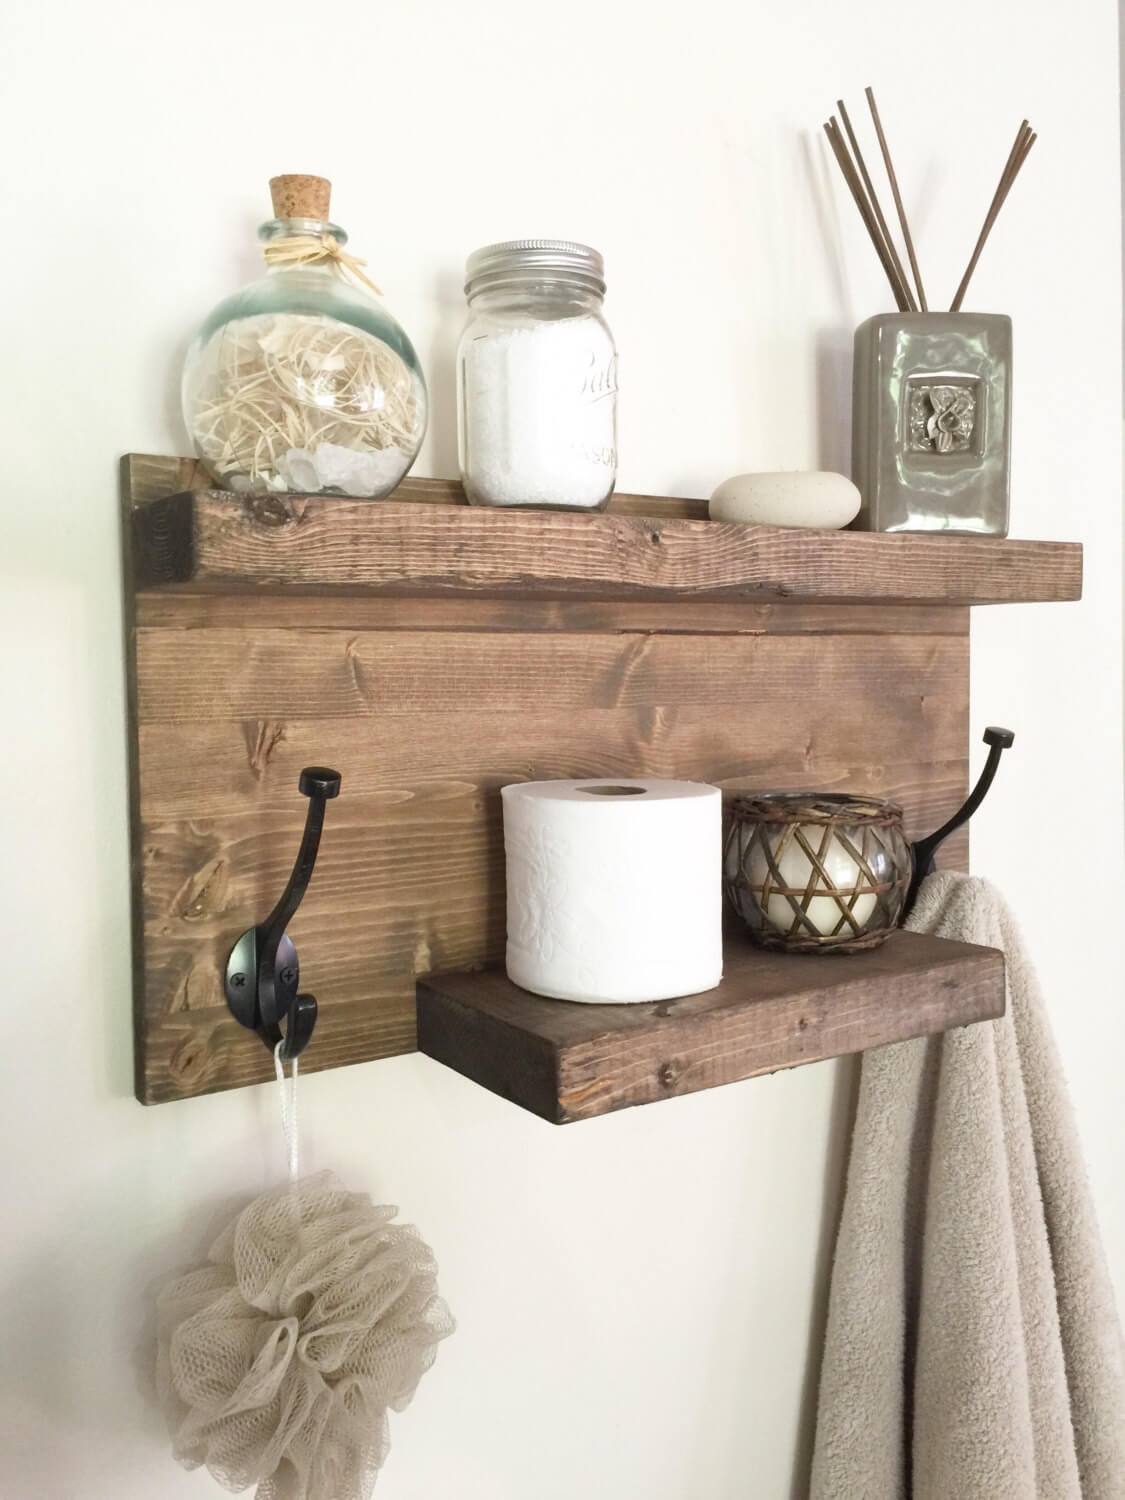 25. DIY Wood Towel Rack And Organizer